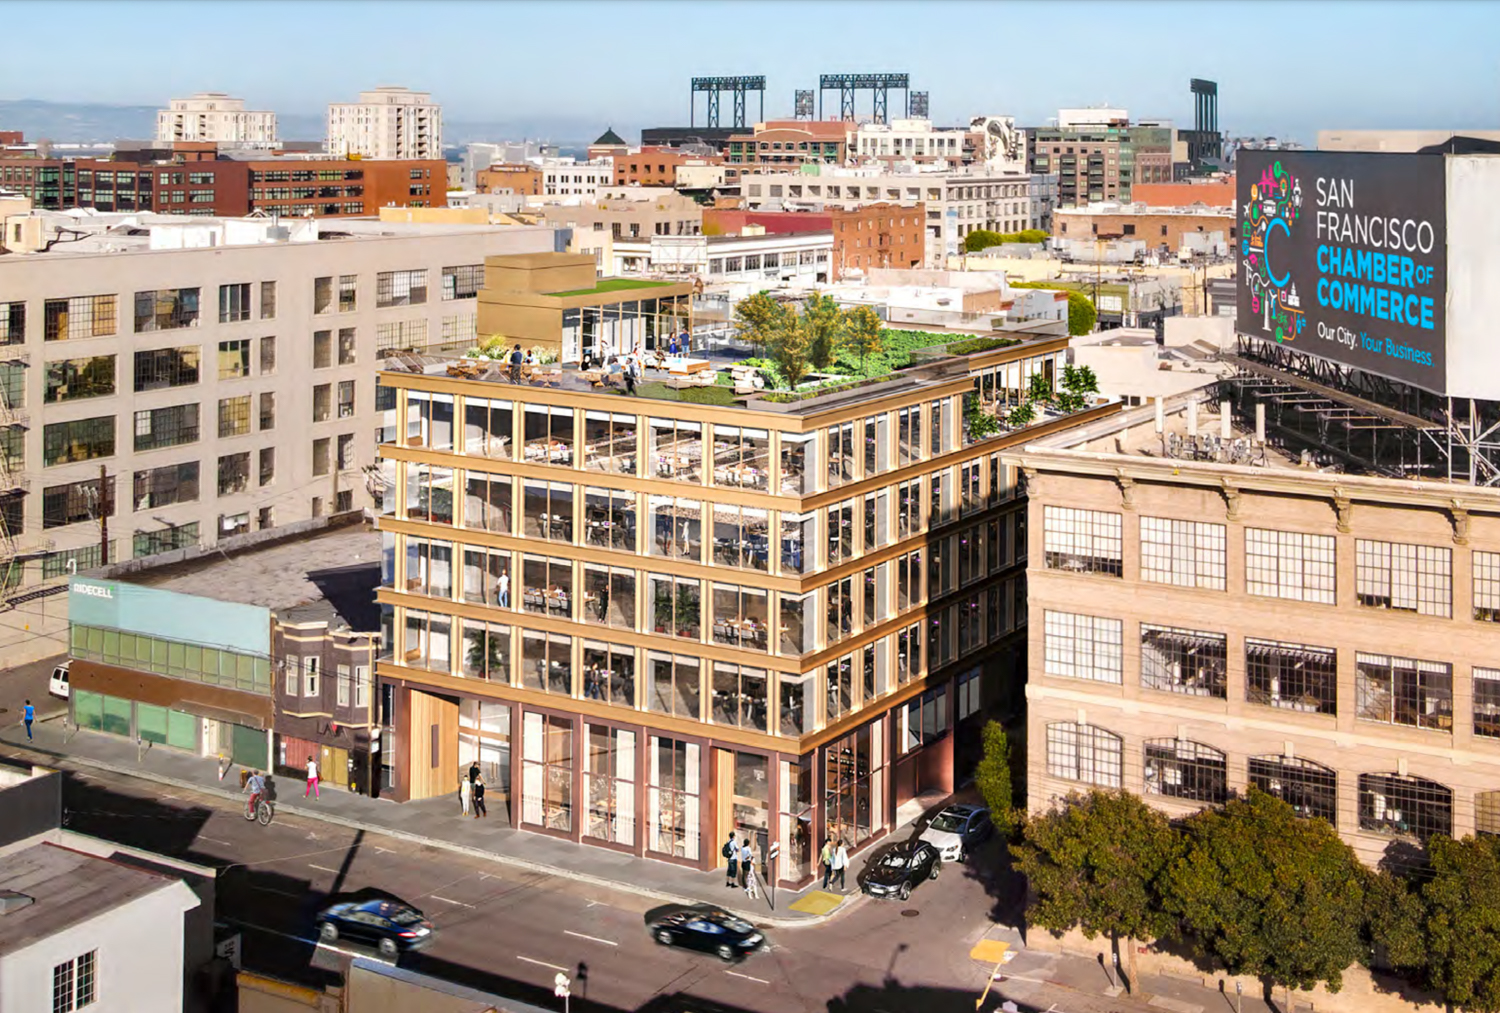 531 Bryant Street with skyline in view, design by Handel Architects rendering by NQS Creative